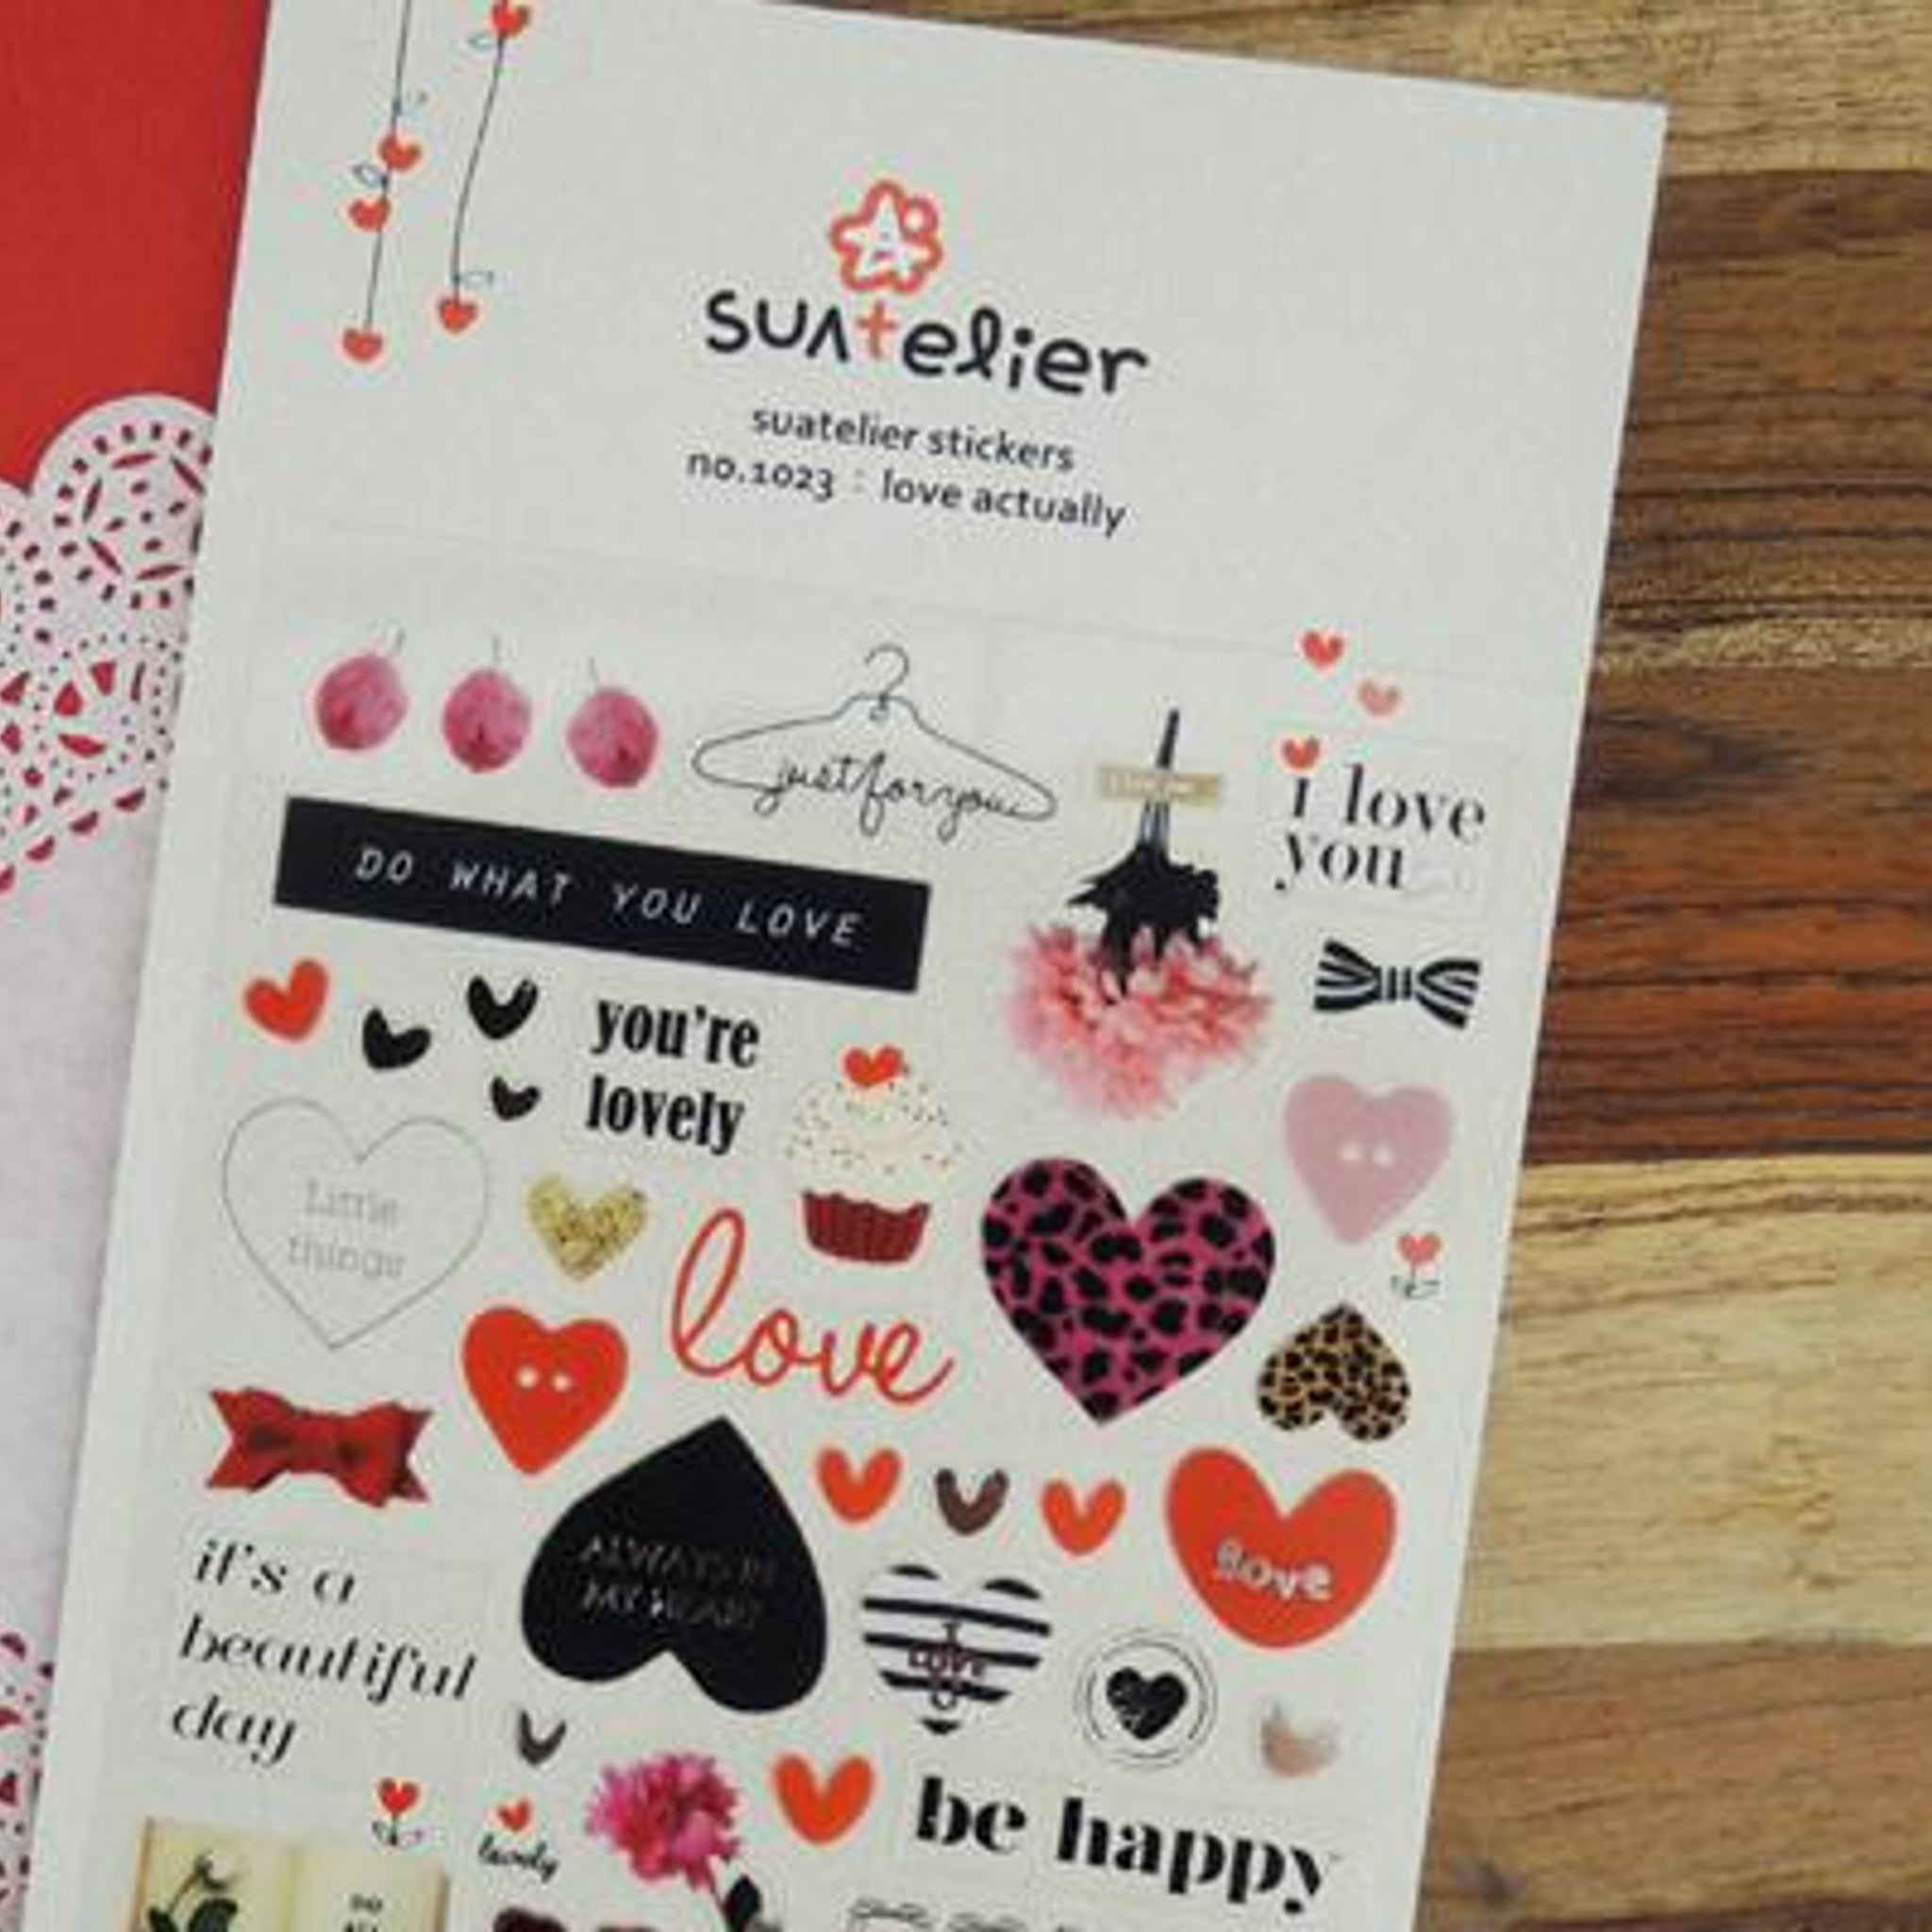 Suatelier Love Actually sticker